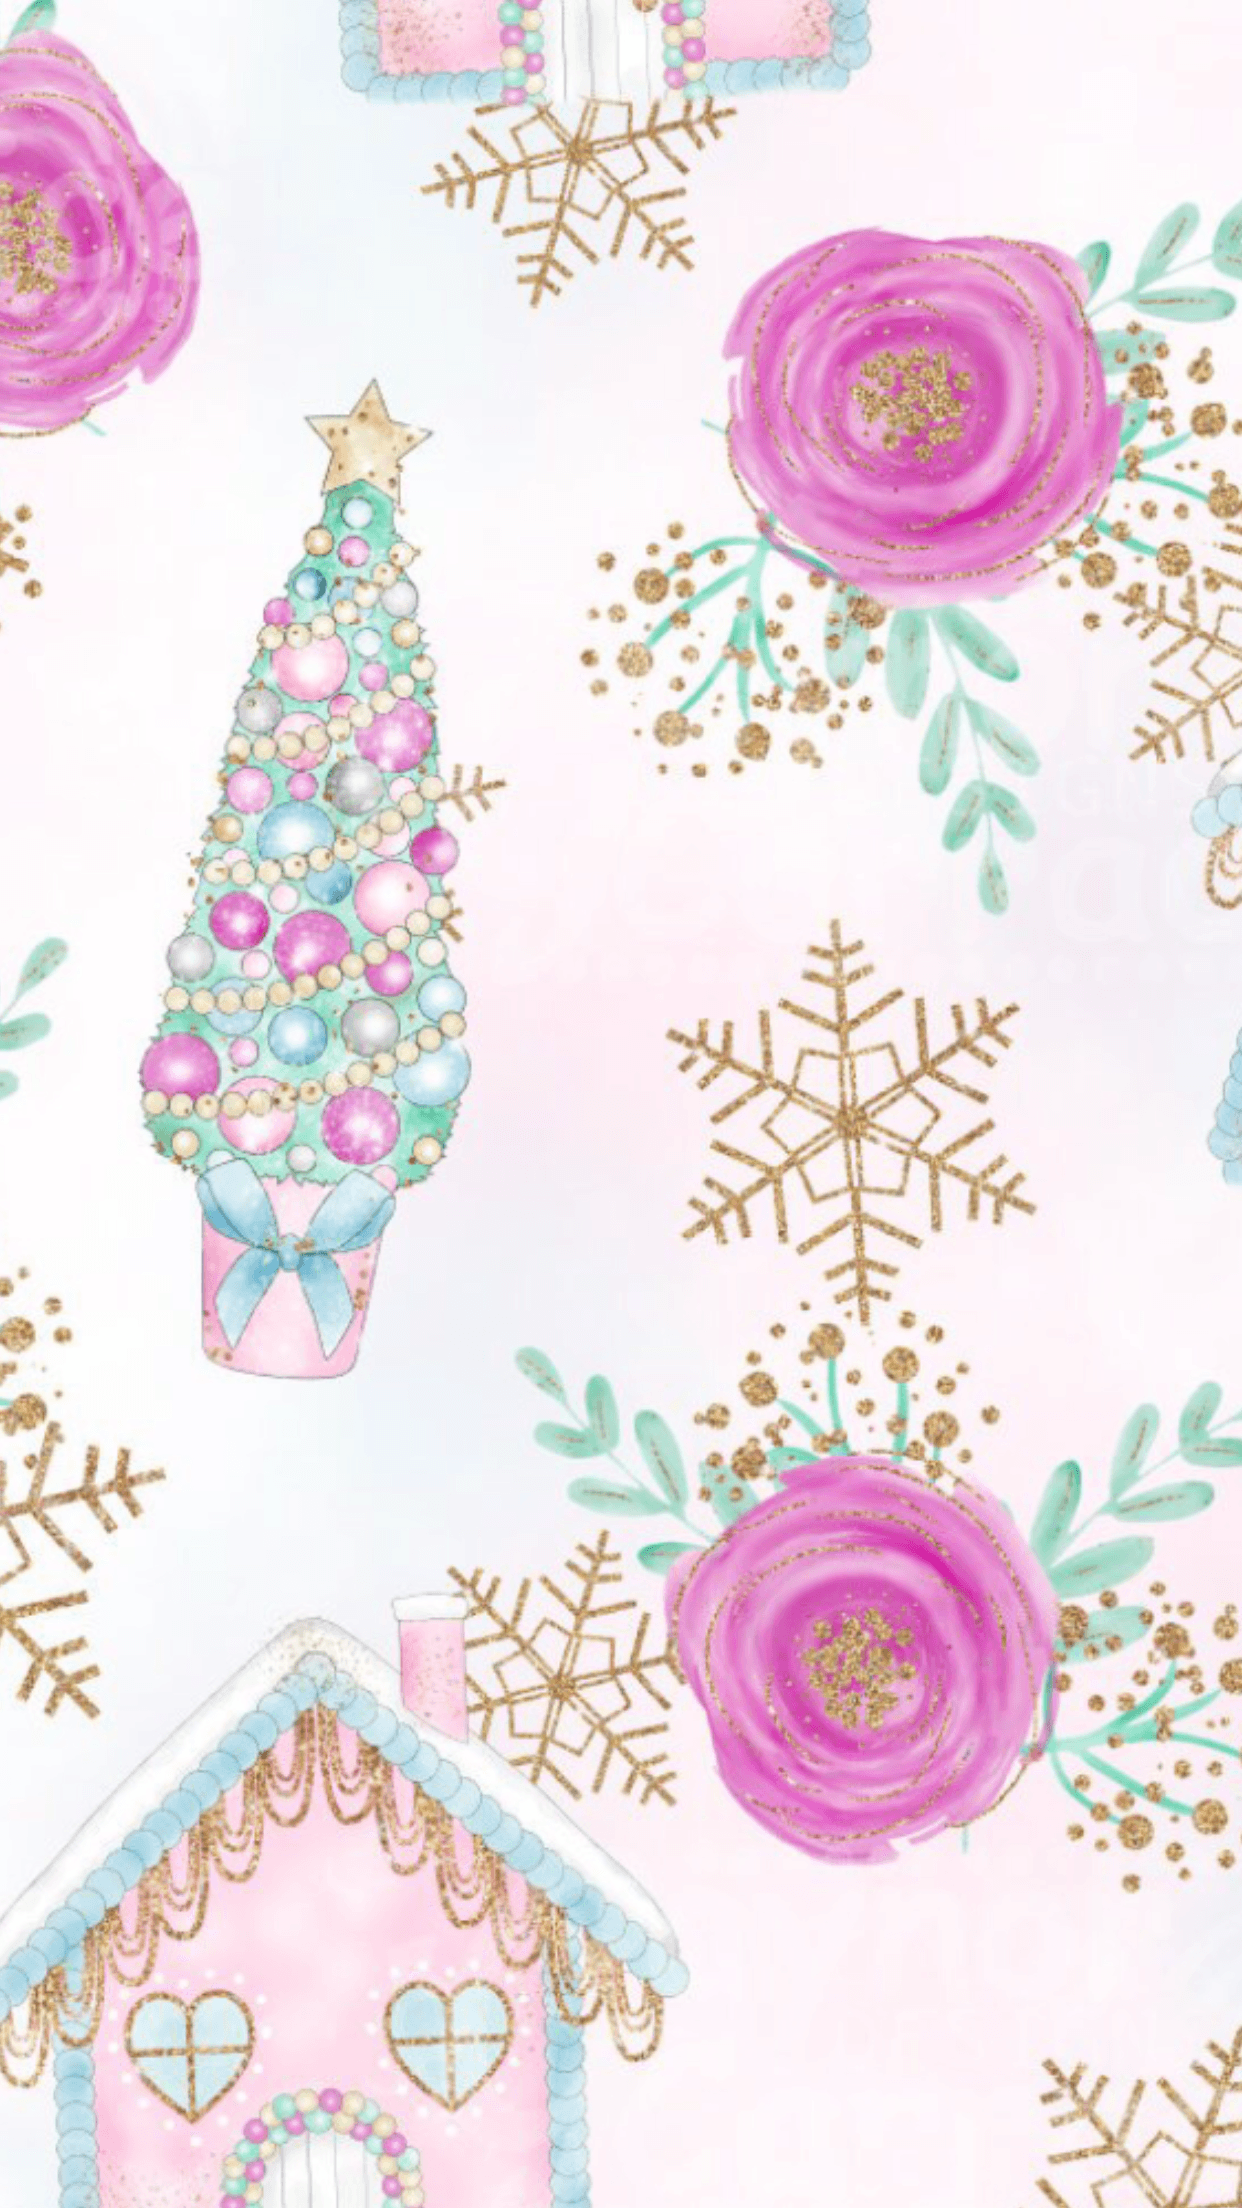 1242x2208 25 Free Christmas Wallpapers for iPhone - Cute and Vintage ...